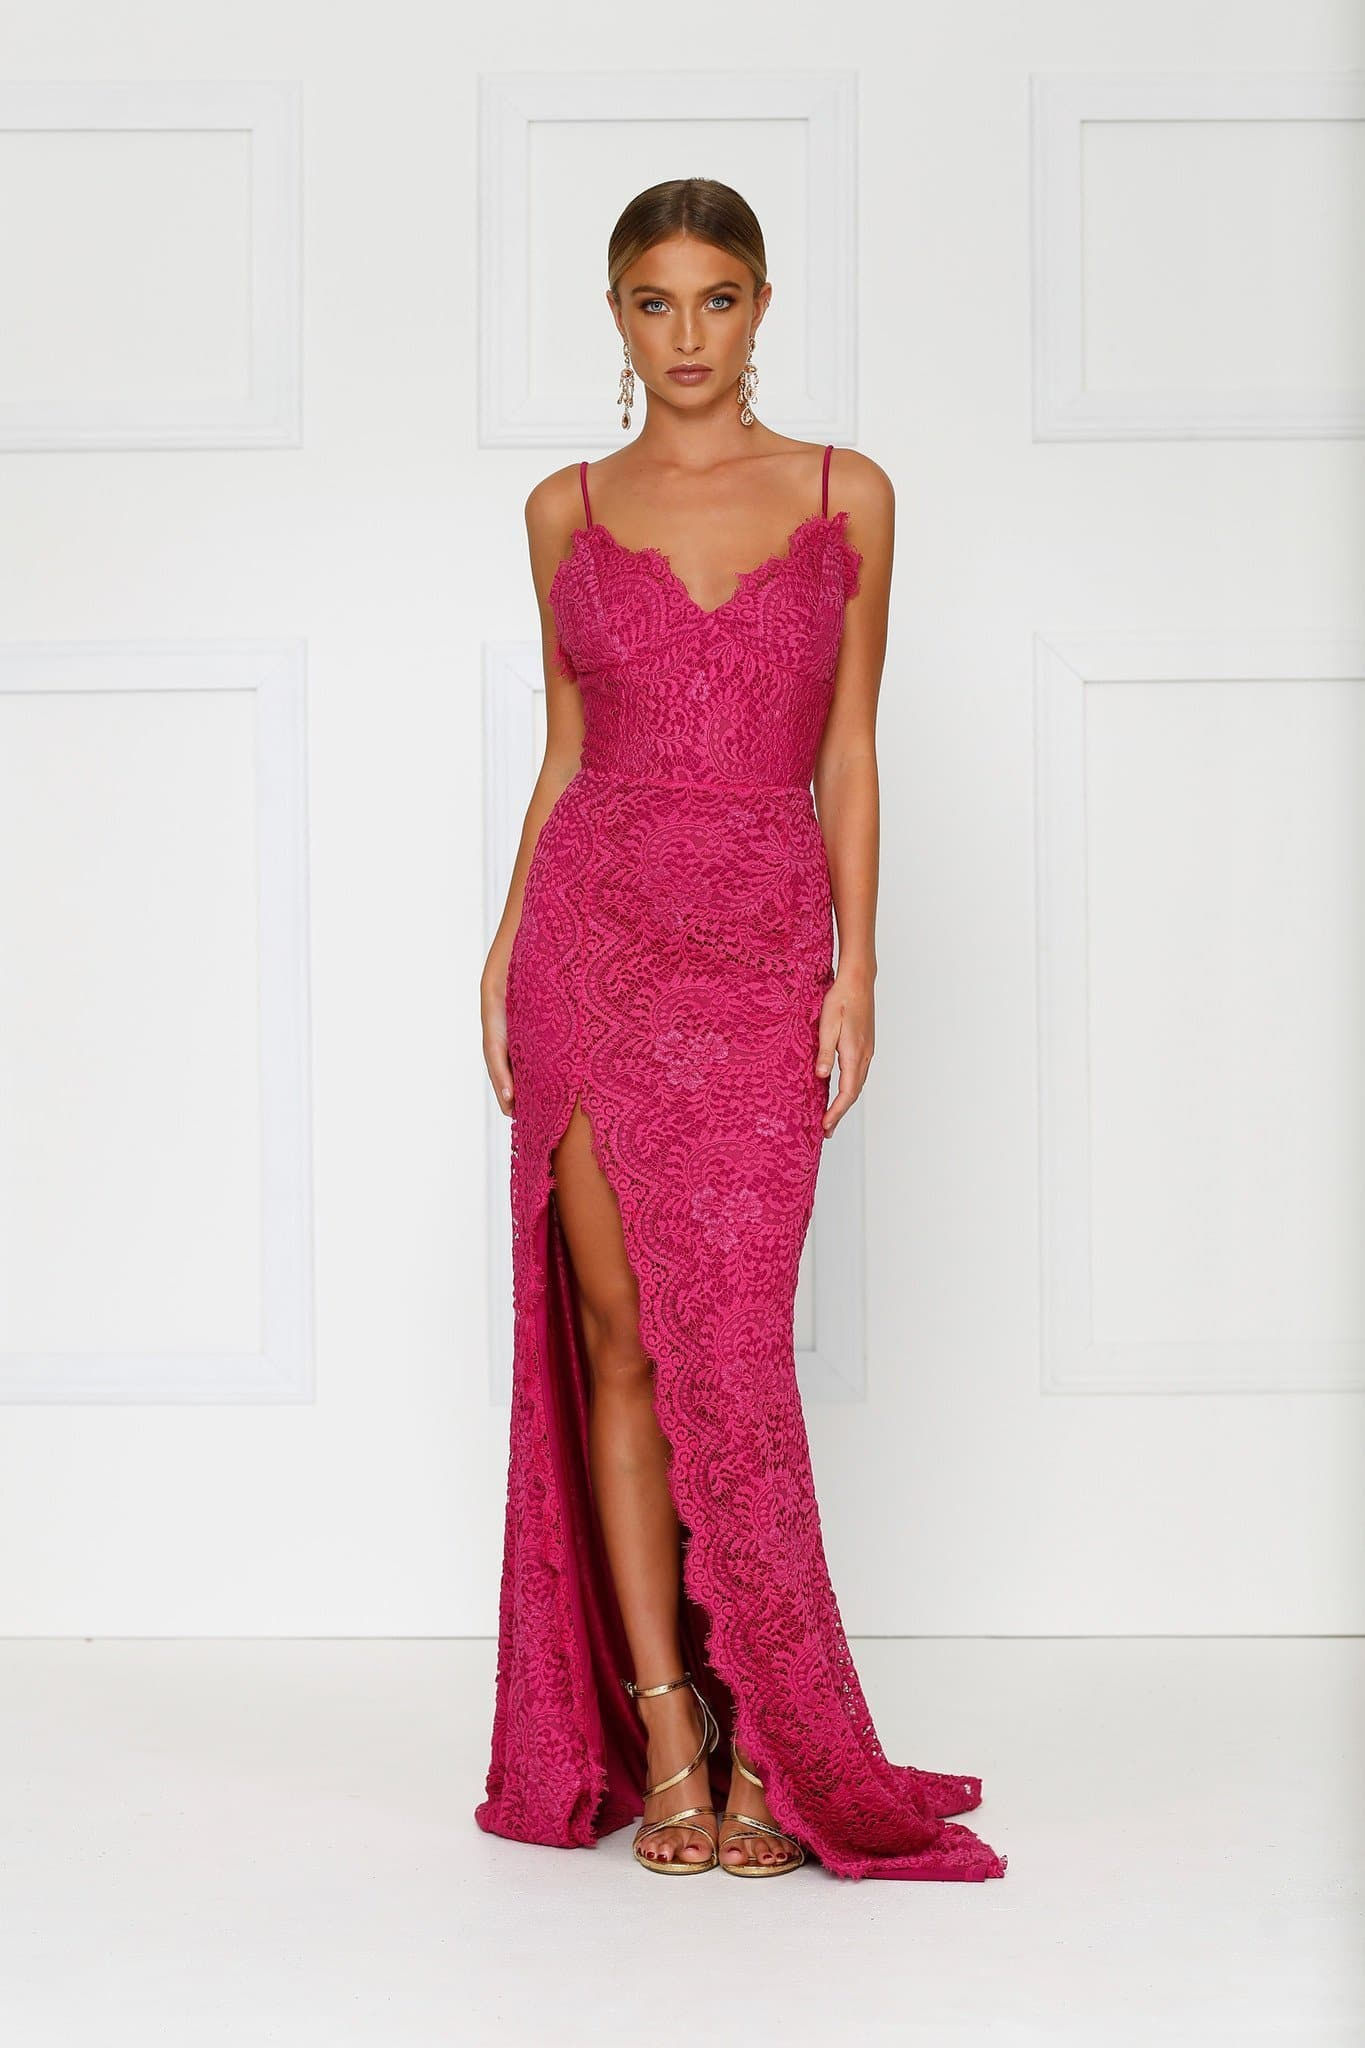 Layali Lace Gown - Hot Pink Lace Dress with Scalloped Lace Detailing